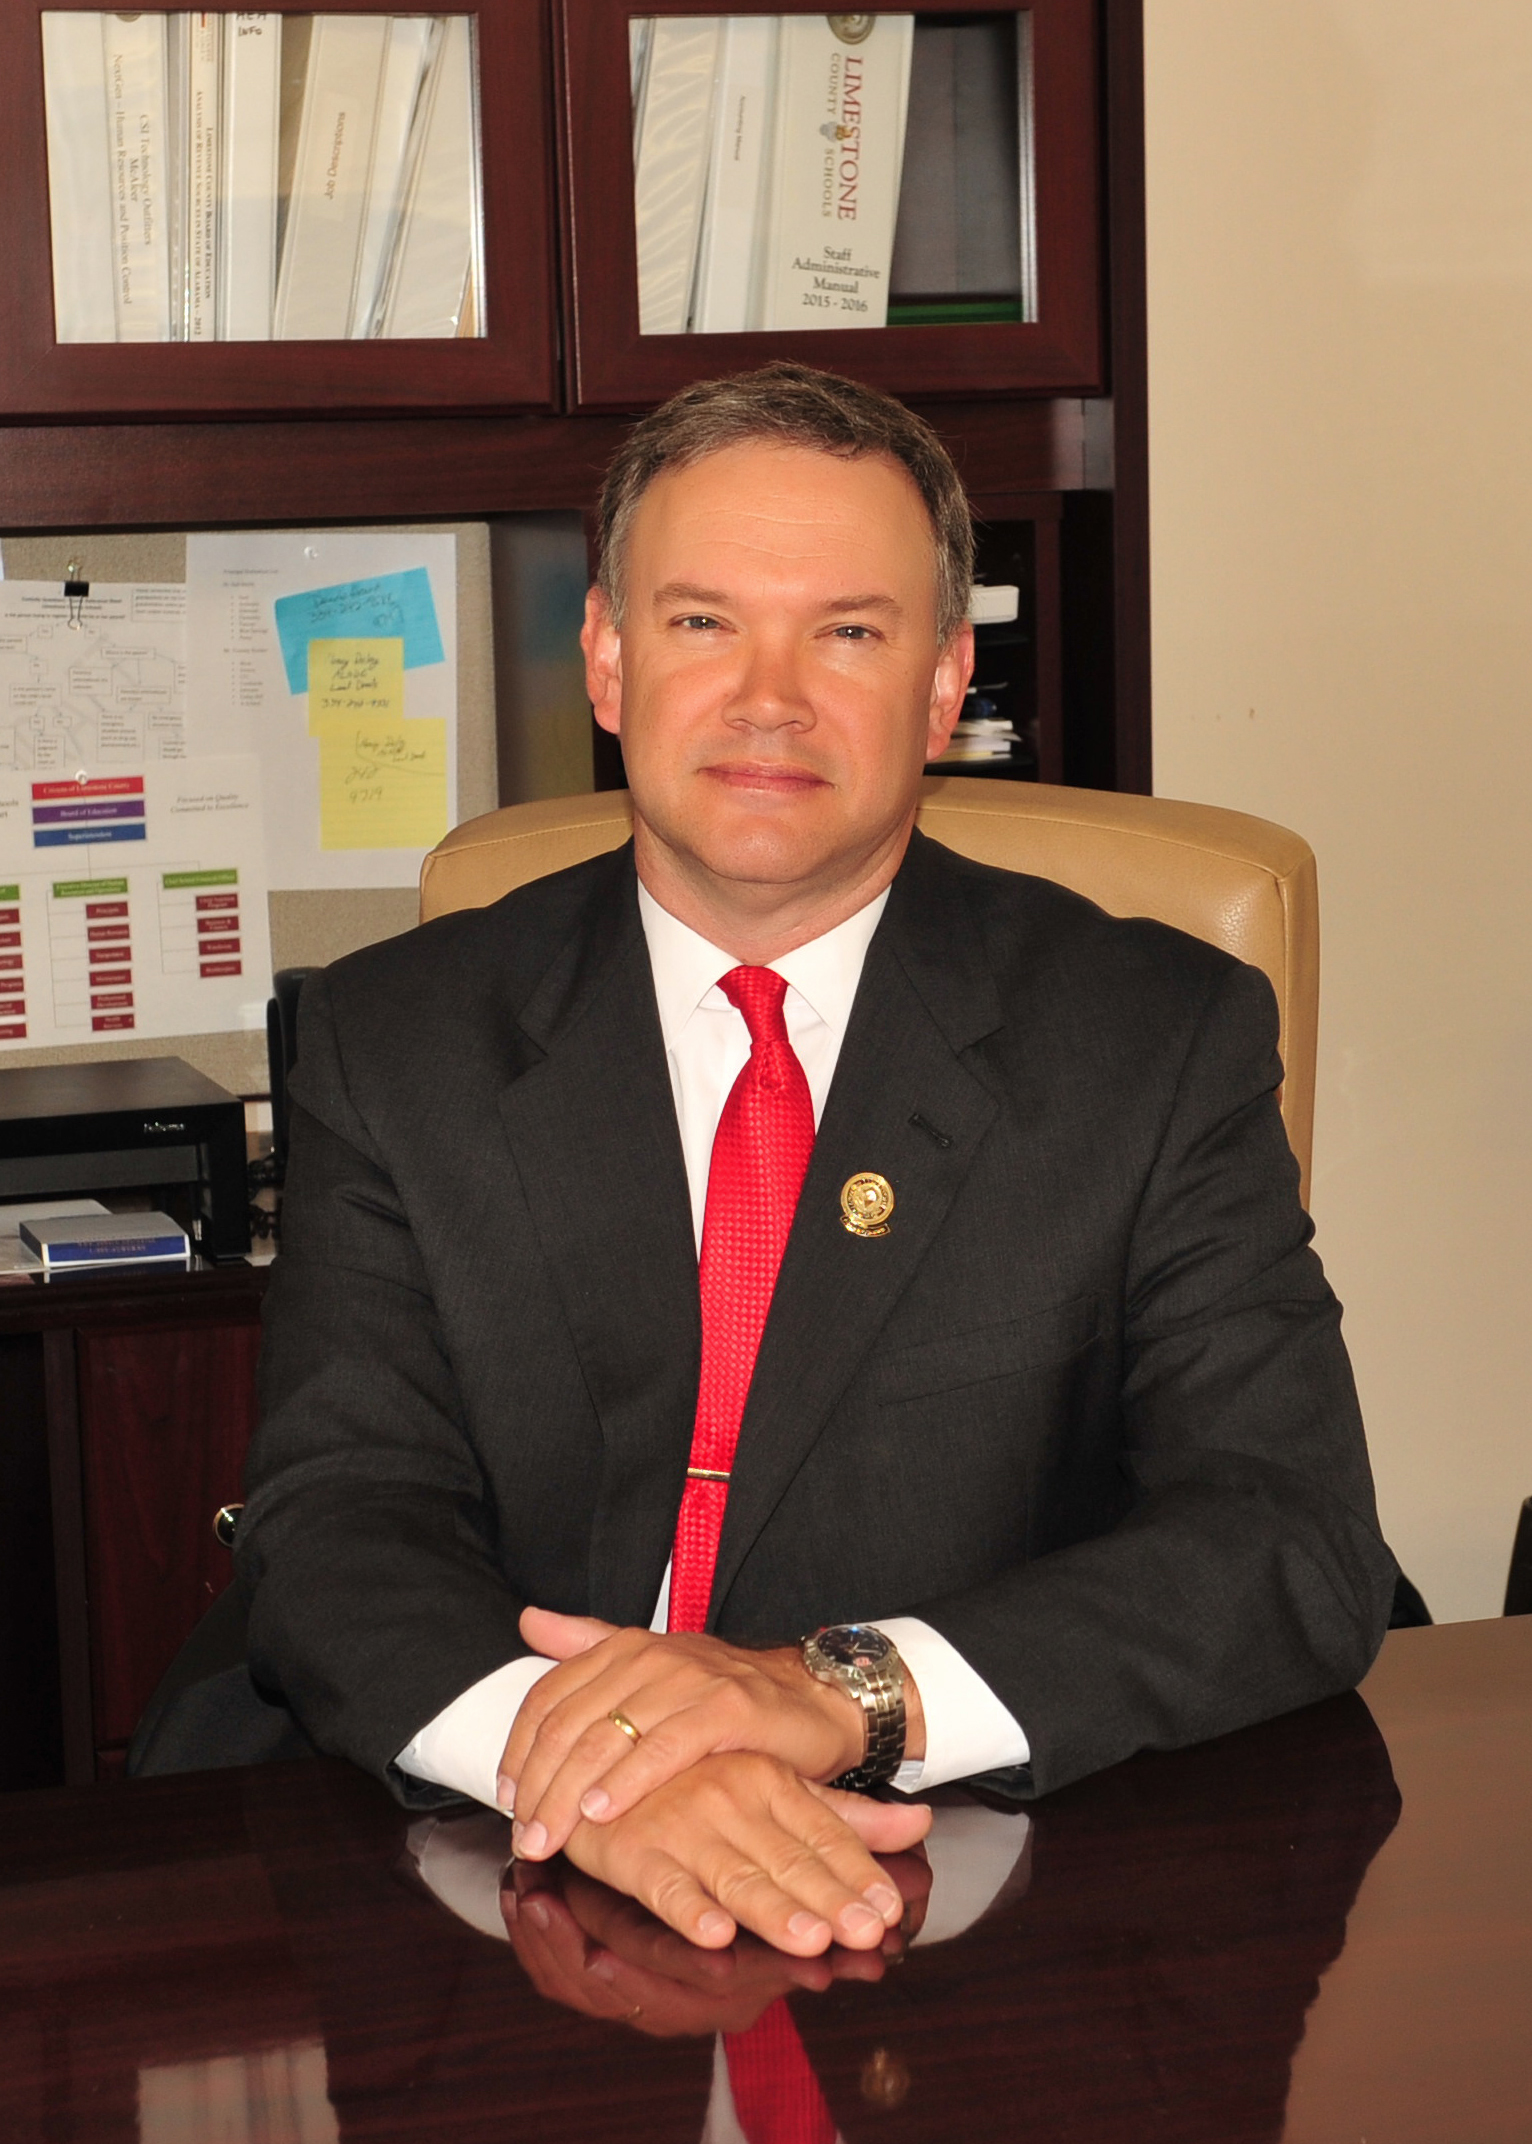 Brad Lewis, Executive Director of Curriculum and Instruction